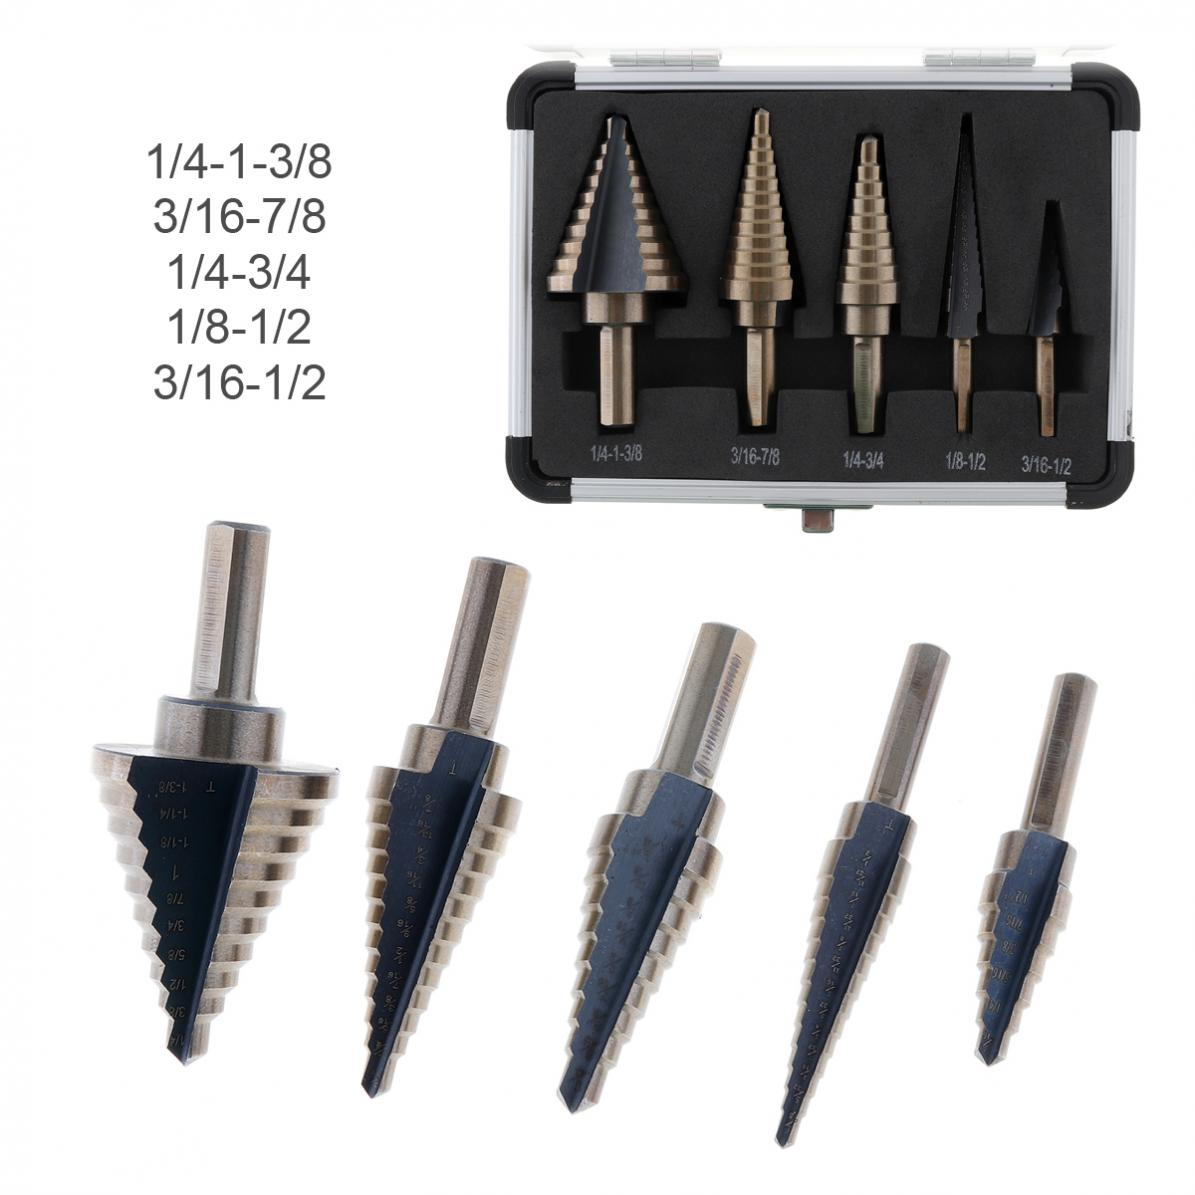 цена на 5pcs HSS Steel Step Drill Bit Set Cone Spiral Grooved Drill Bits Multiple Hole of 1/4-1-3/8 3/16-7/8 1/4-3/4 1/8-1/2 3/16-1/2